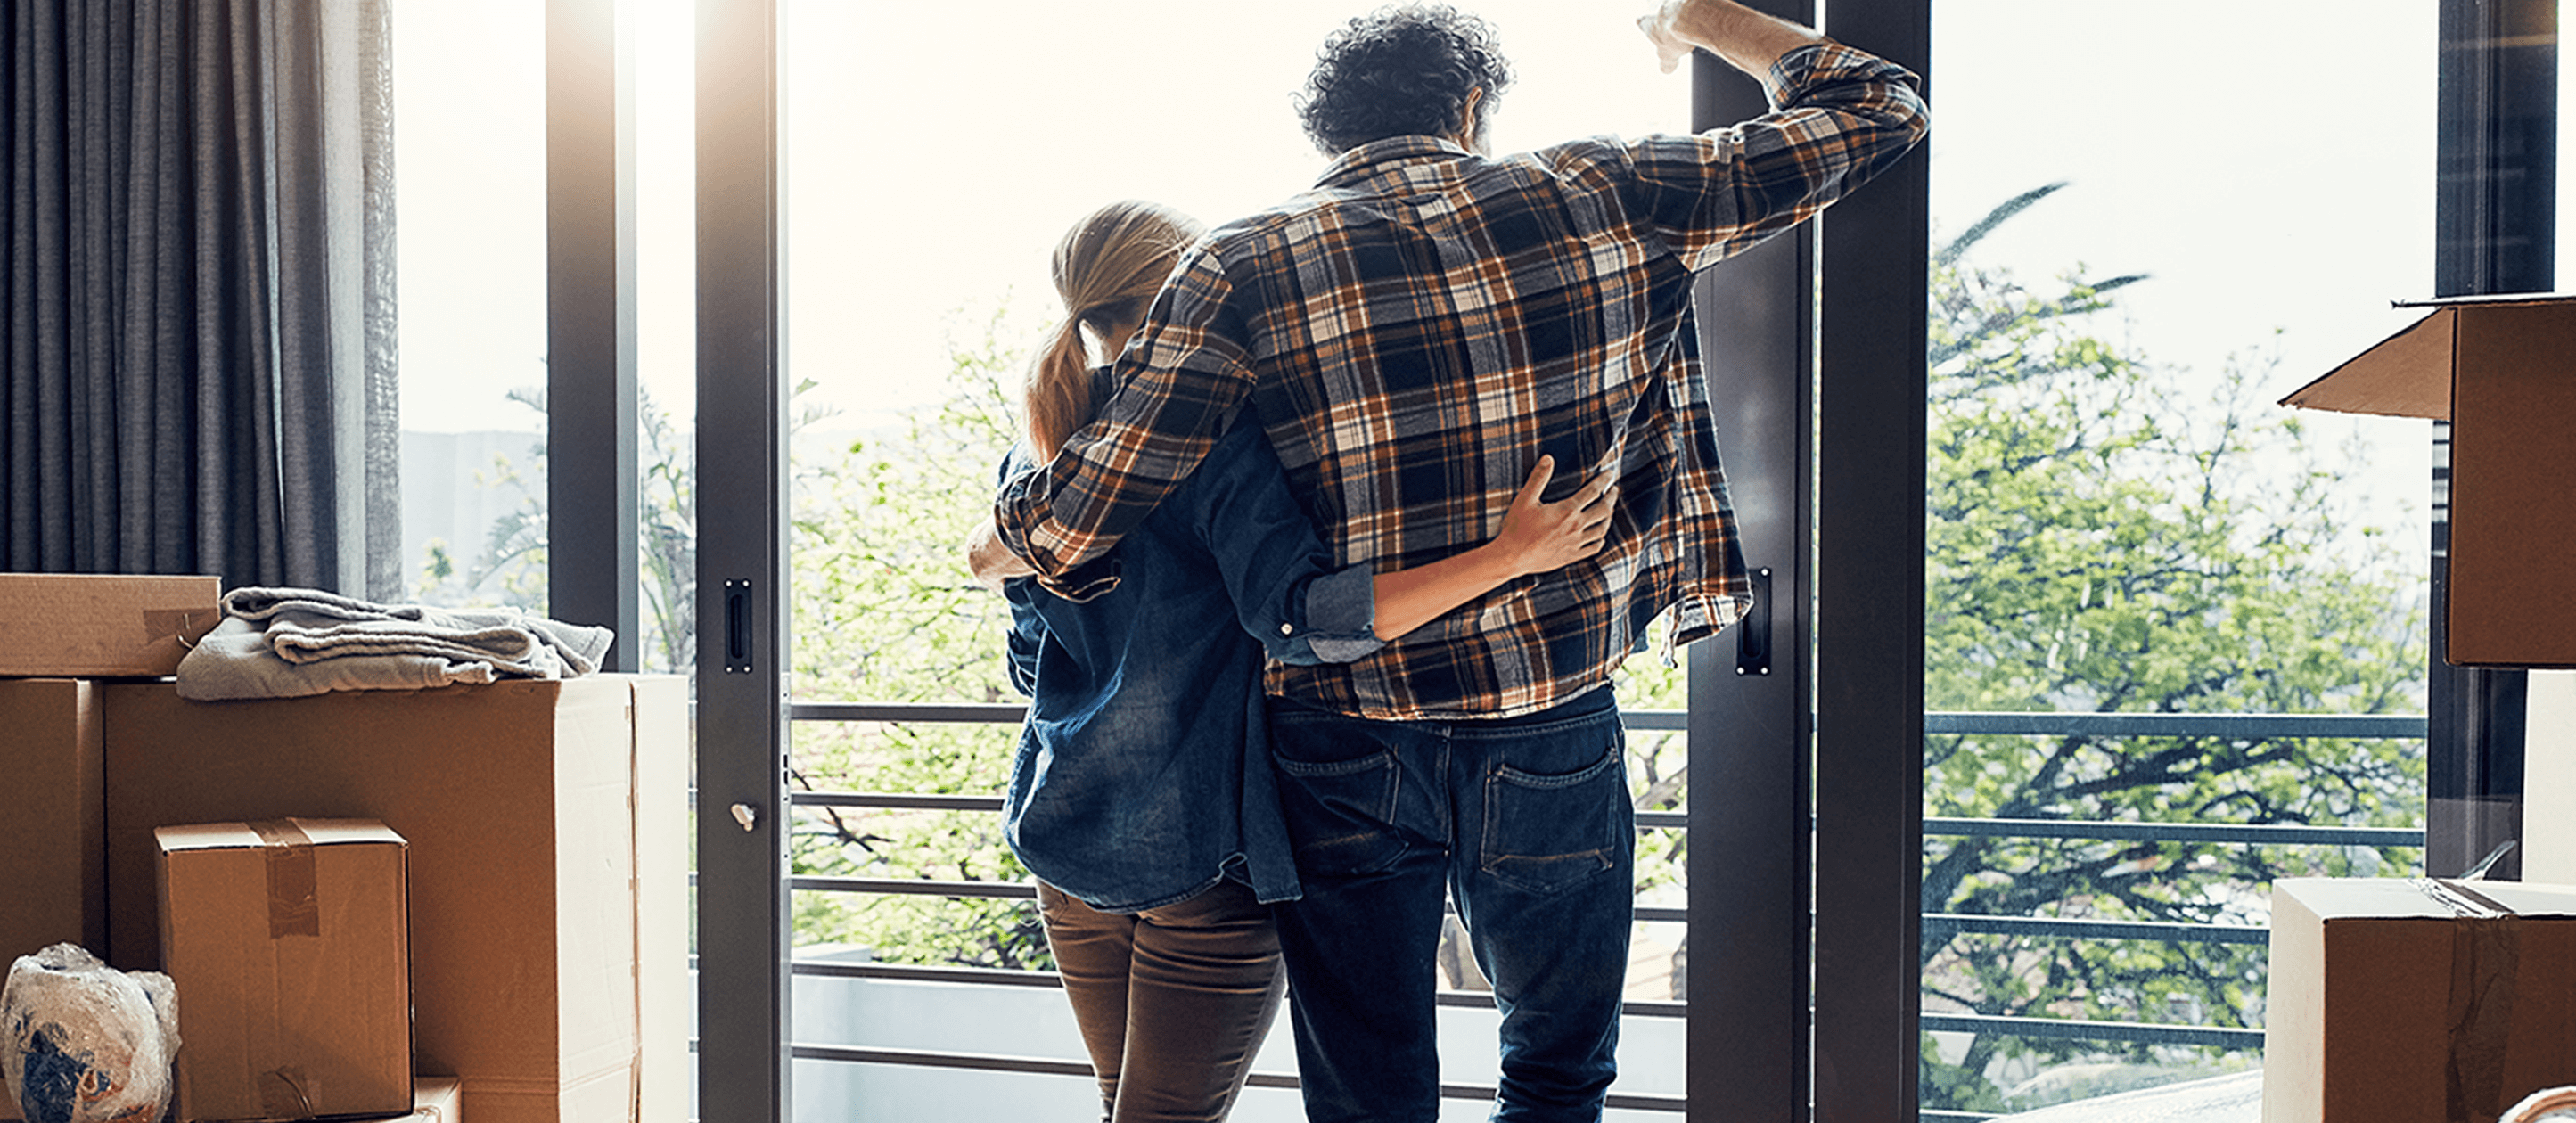 Image of couple surrounded by moving boxes and looking out of a glass door